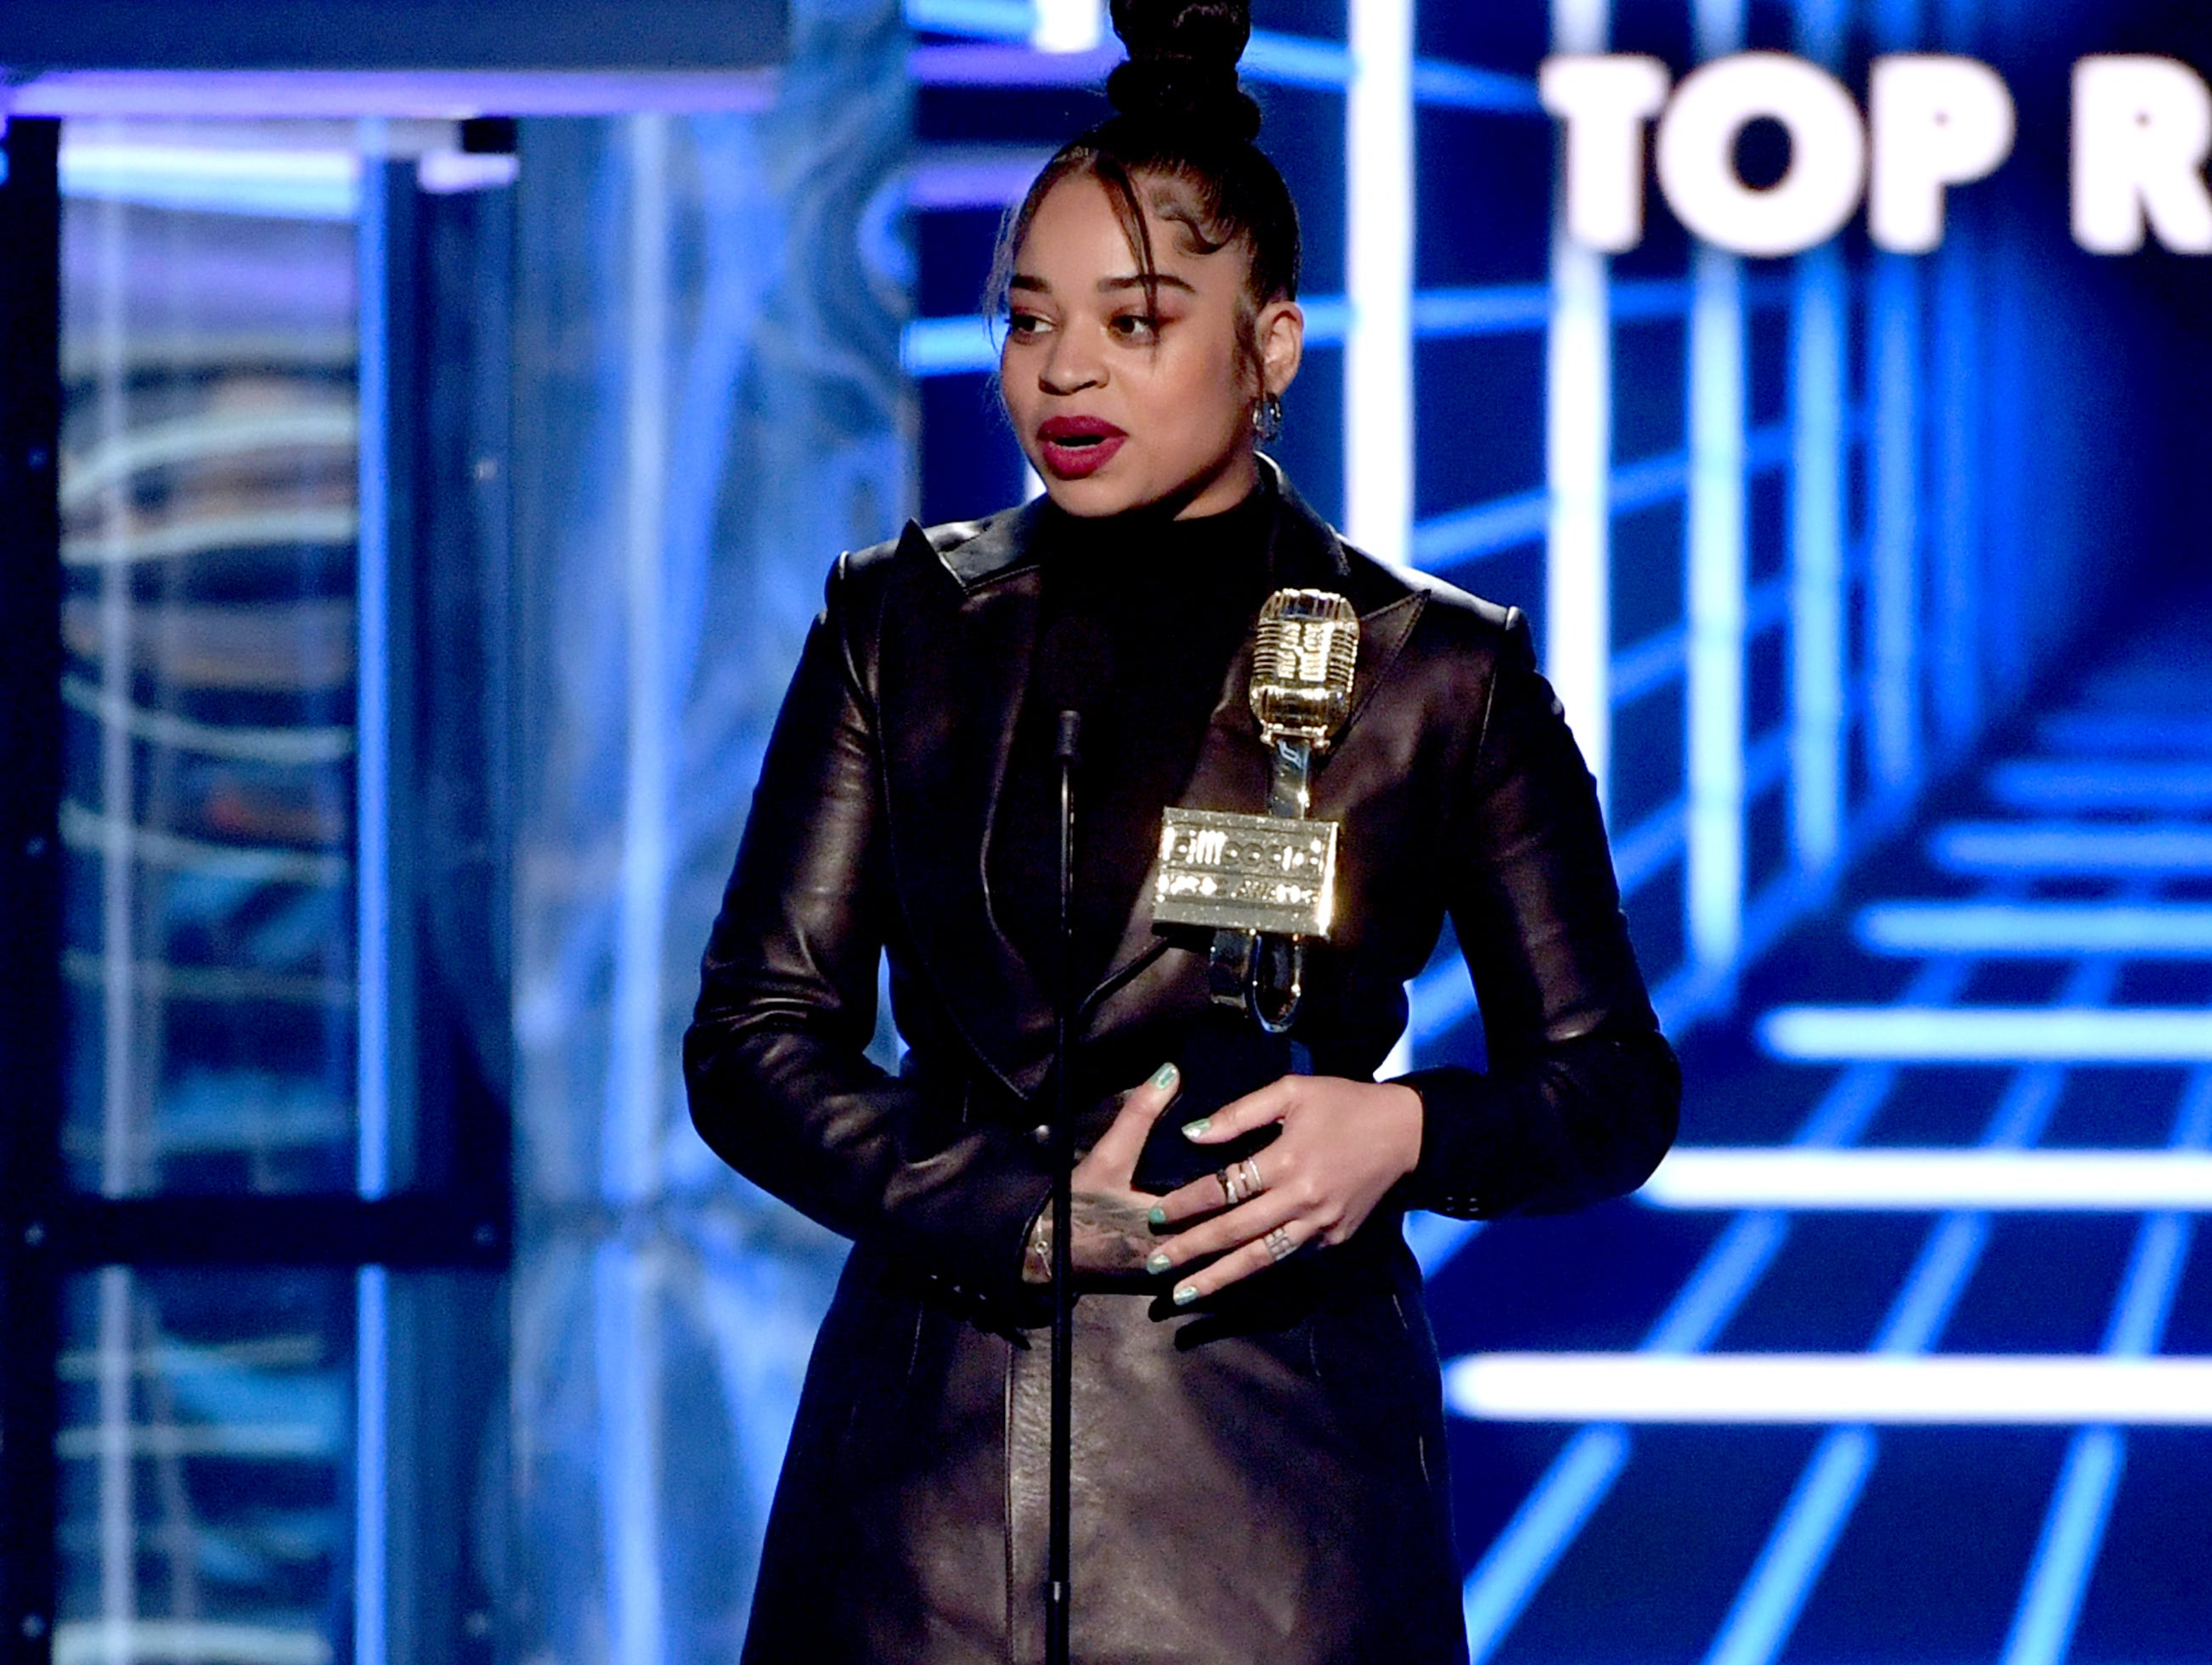 Ella Mai accepts the Top R&B Artist award onstage during the 2019 Billboard Music Awards at MGM Grand Garden Arena on May 01, 2019 in Las Vegas, Nevada.